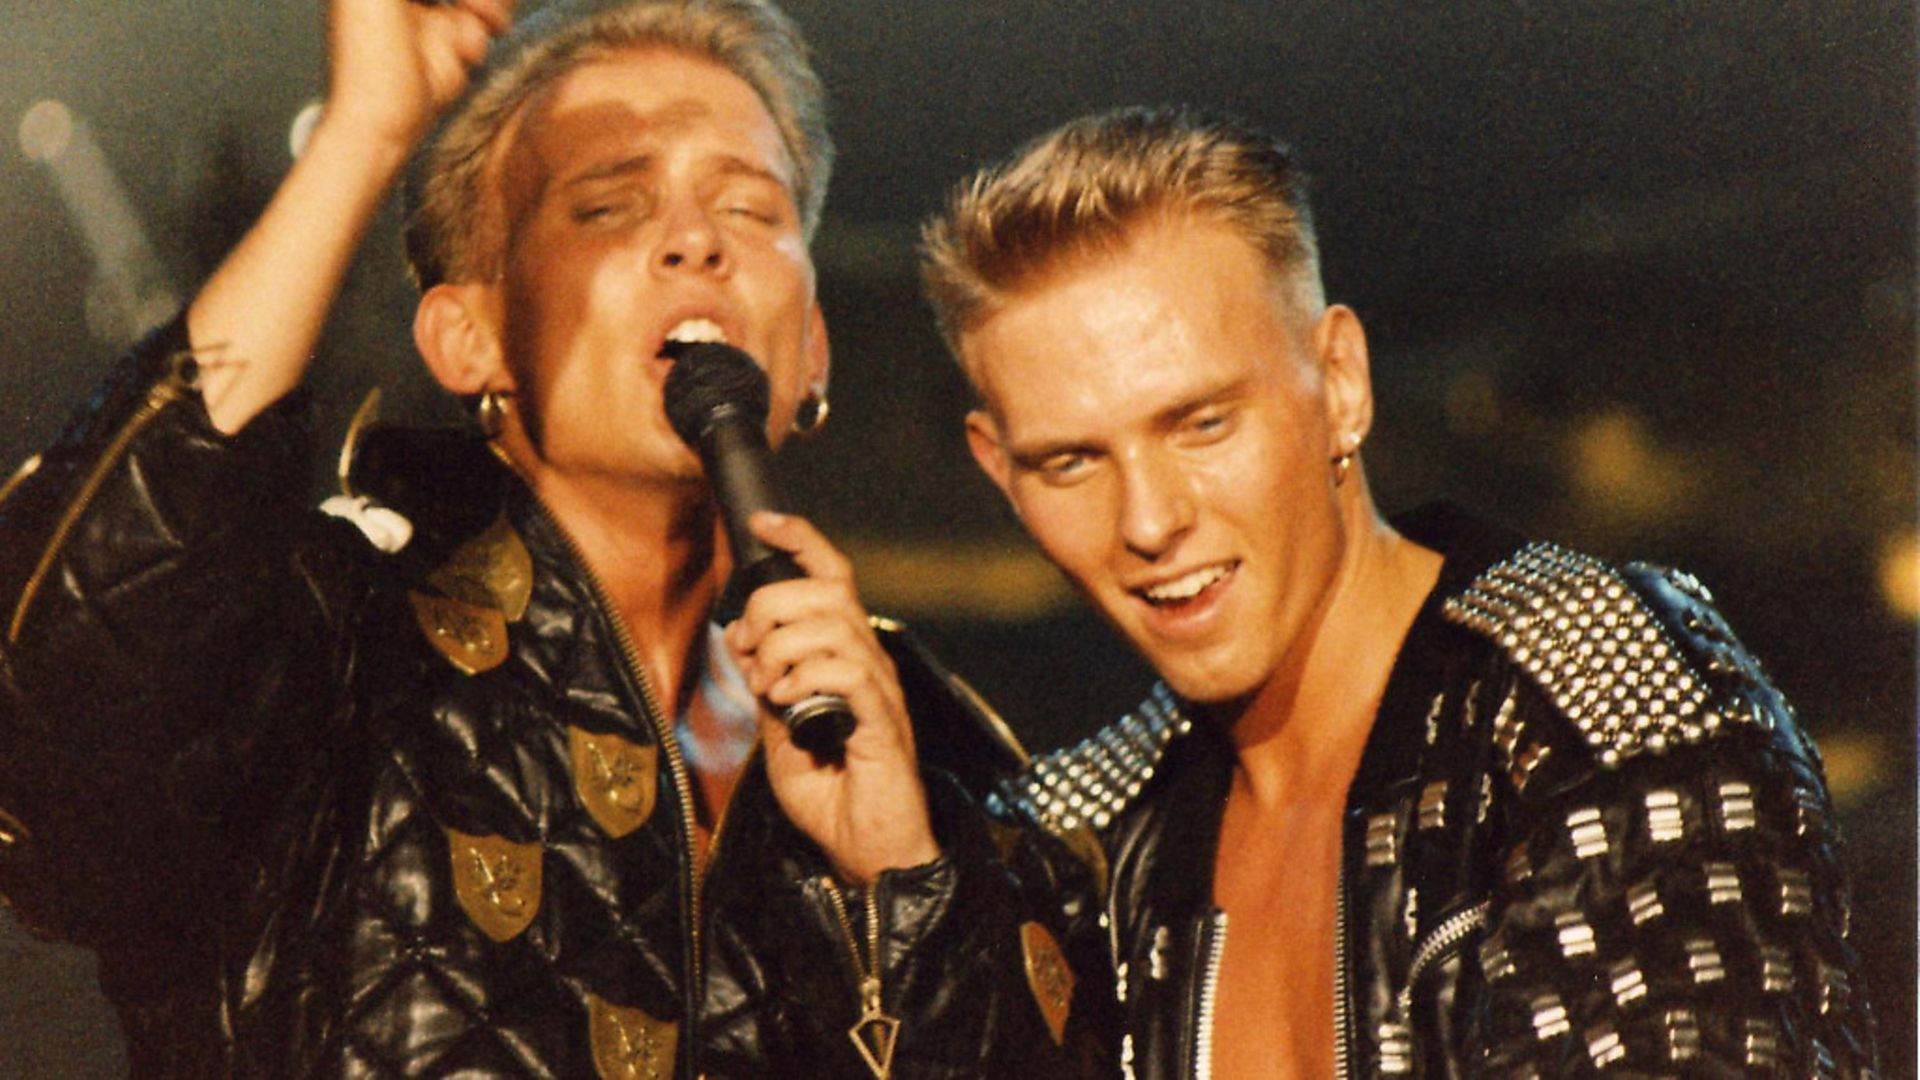 Matt and Luke Goss of Bros perform on stage on 'The Big Push' tour at Wembley Arena on December 28th, 1988 in London, England. (Photo by Peter Still/Redferns) - Credit: Redferns